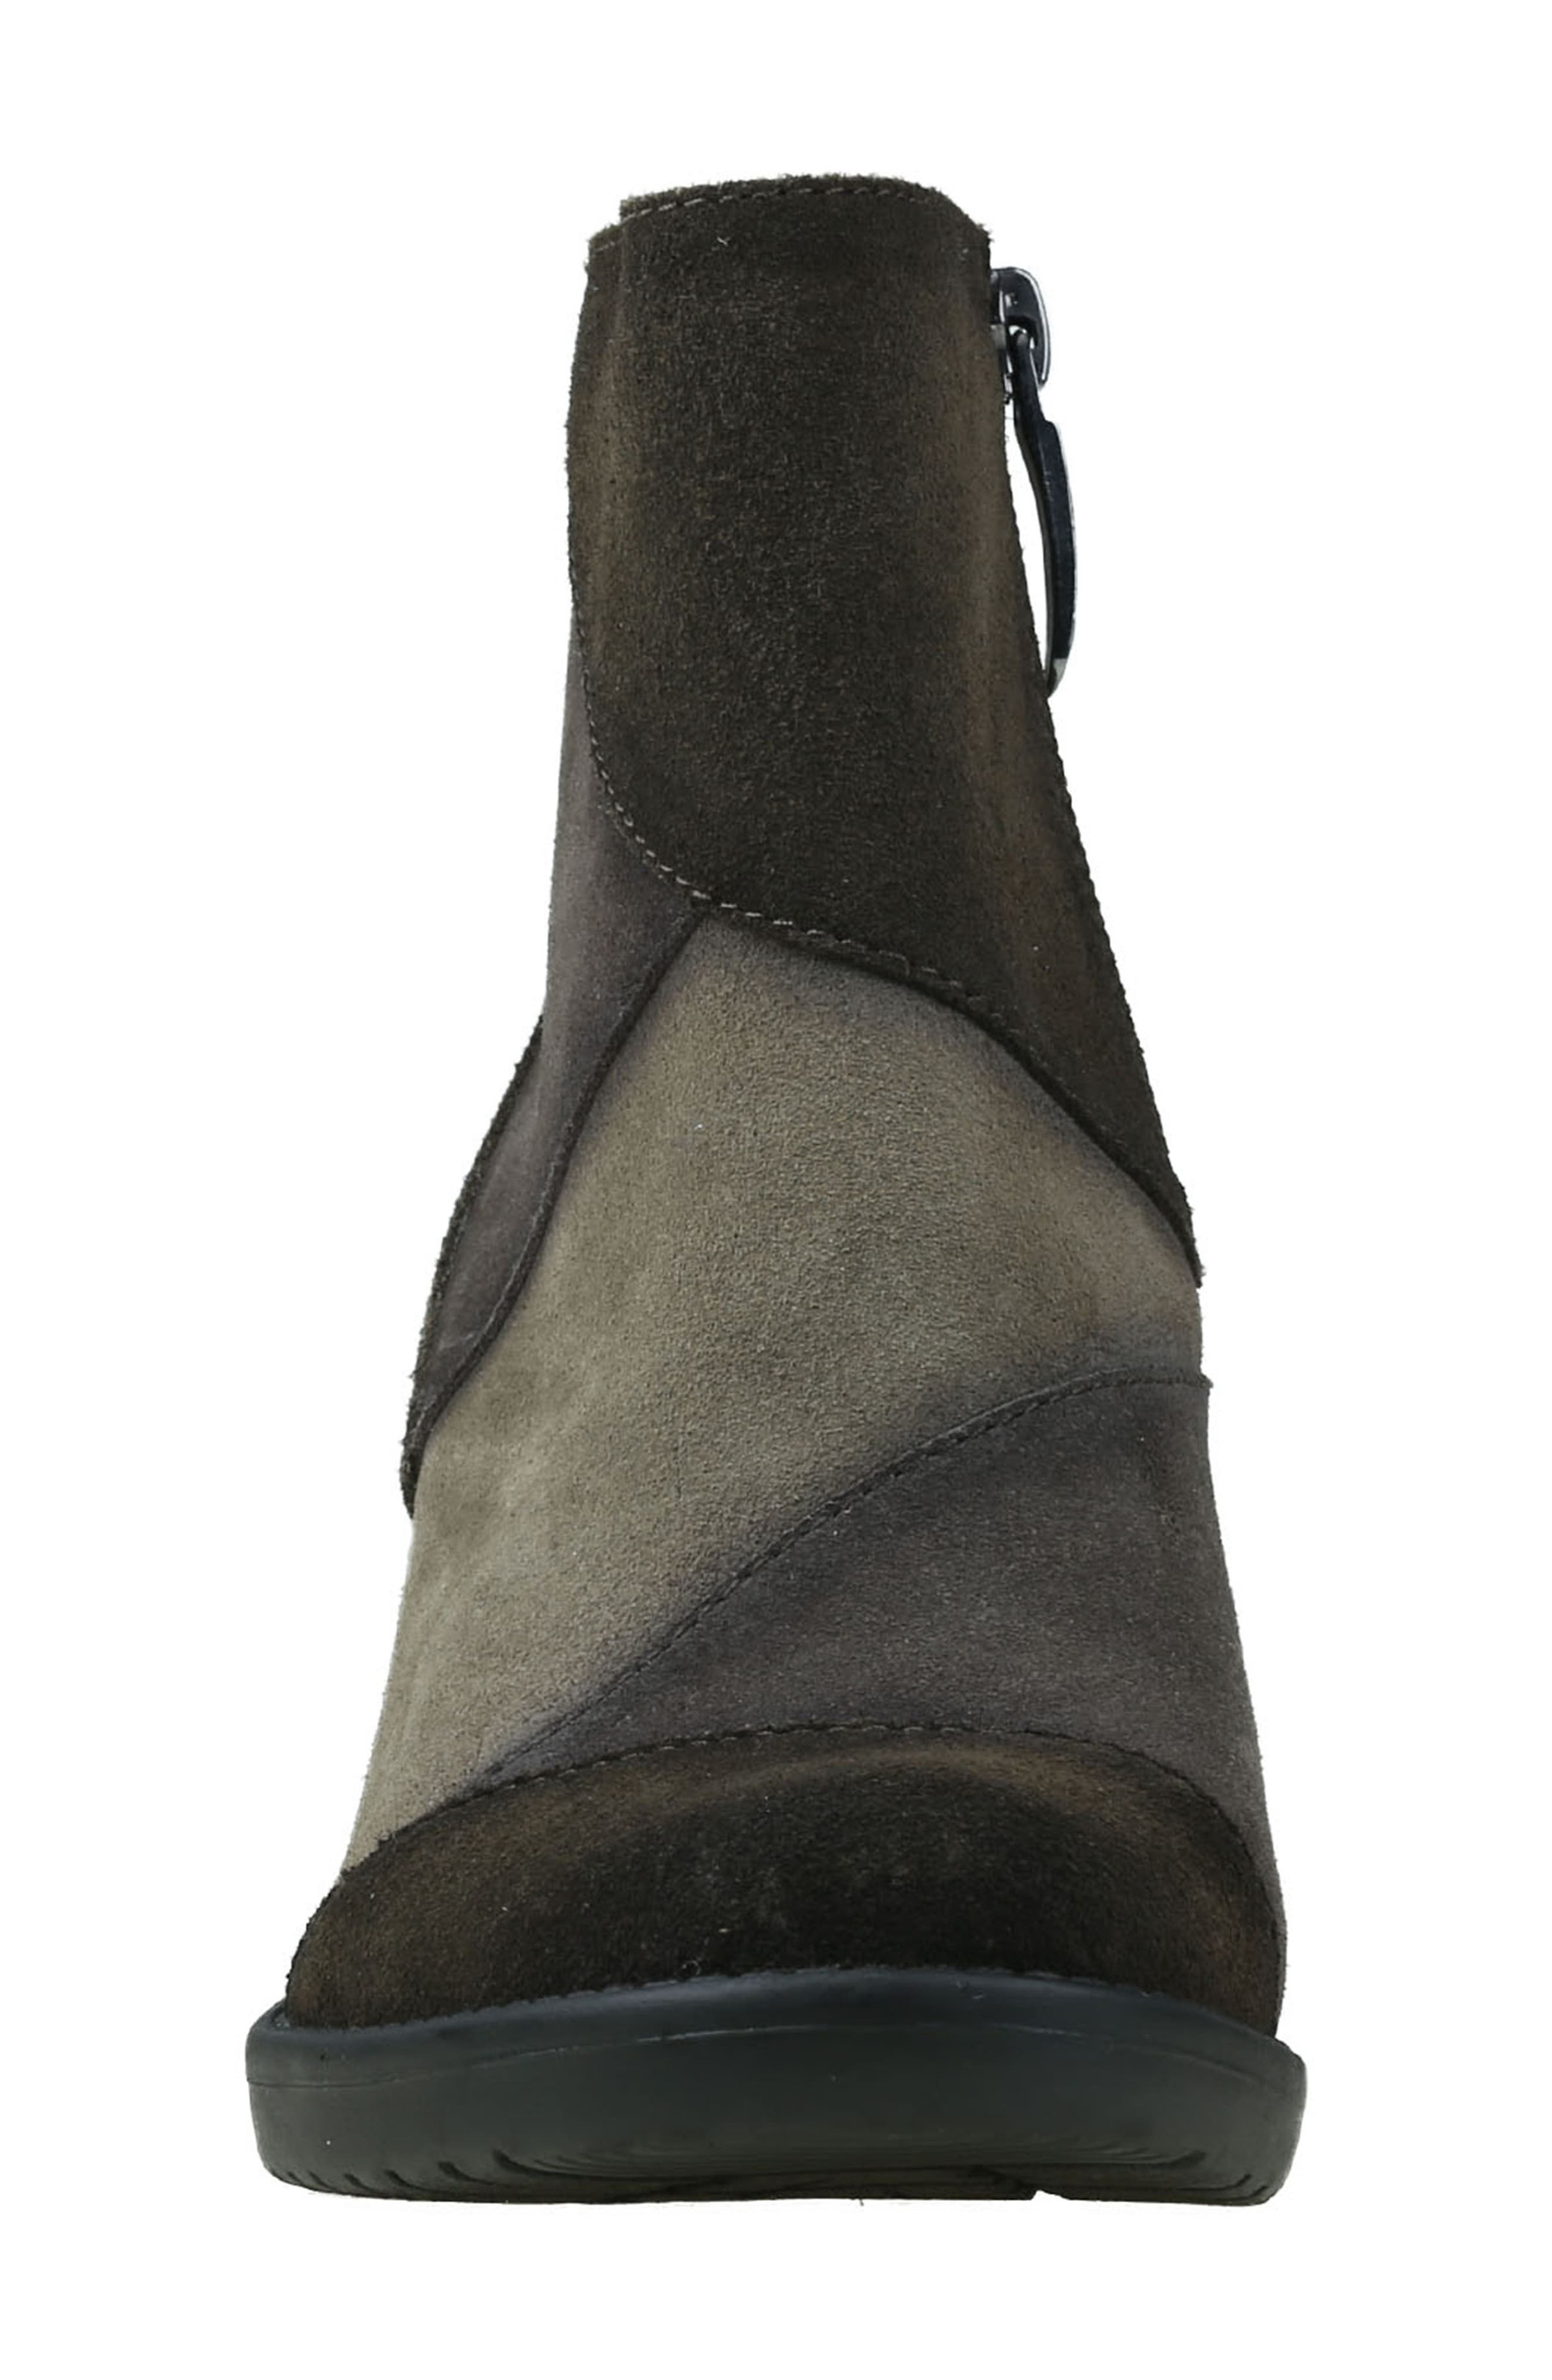 Malta Water Resistant Bootie,                             Alternate thumbnail 4, color,                             Olive Suede